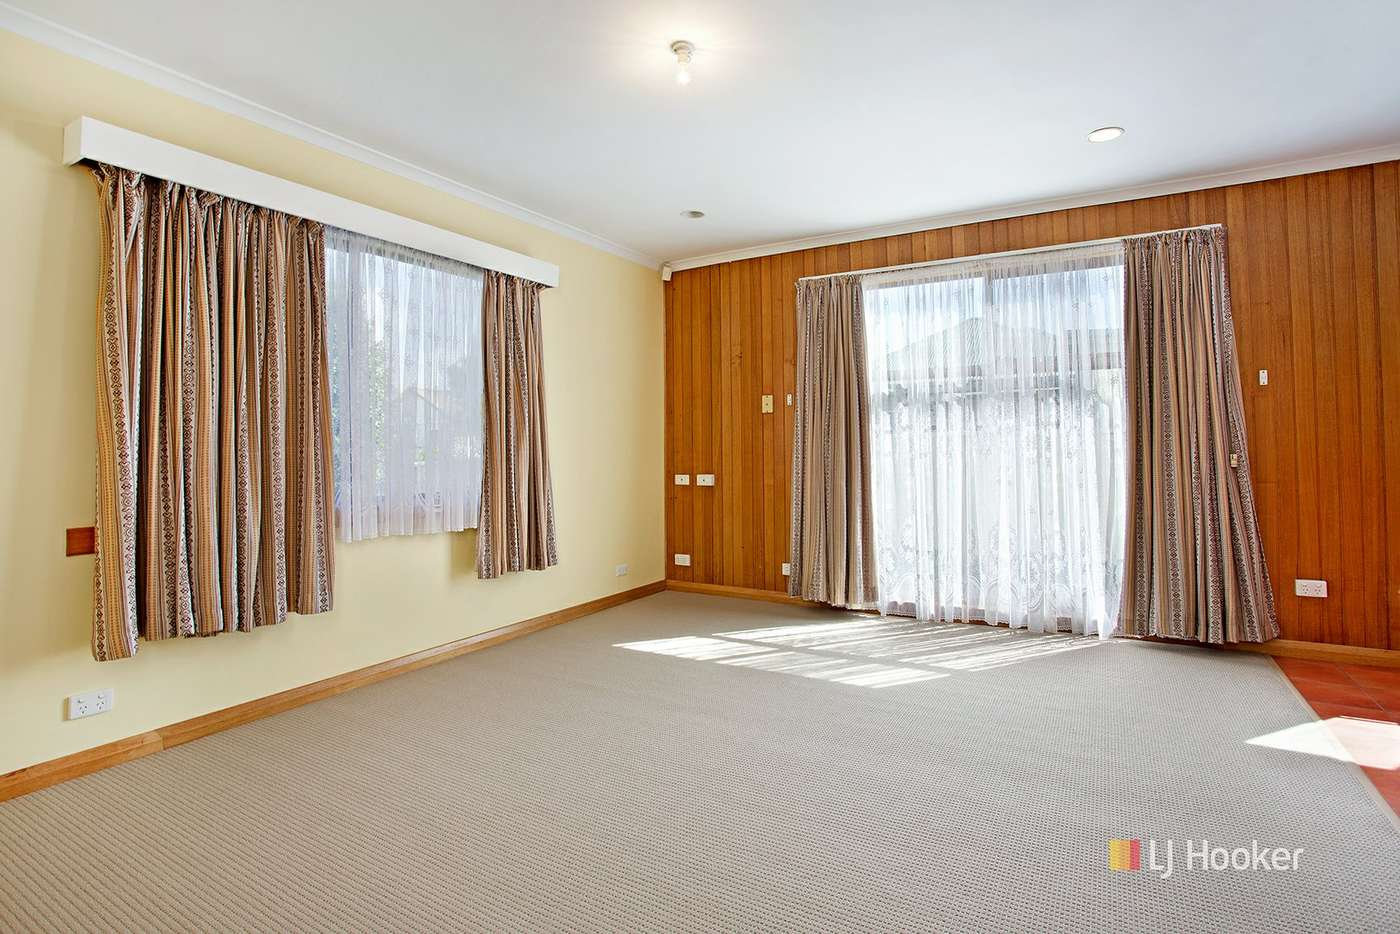 Sixth view of Homely house listing, 44 Park Street, Wynyard TAS 7325